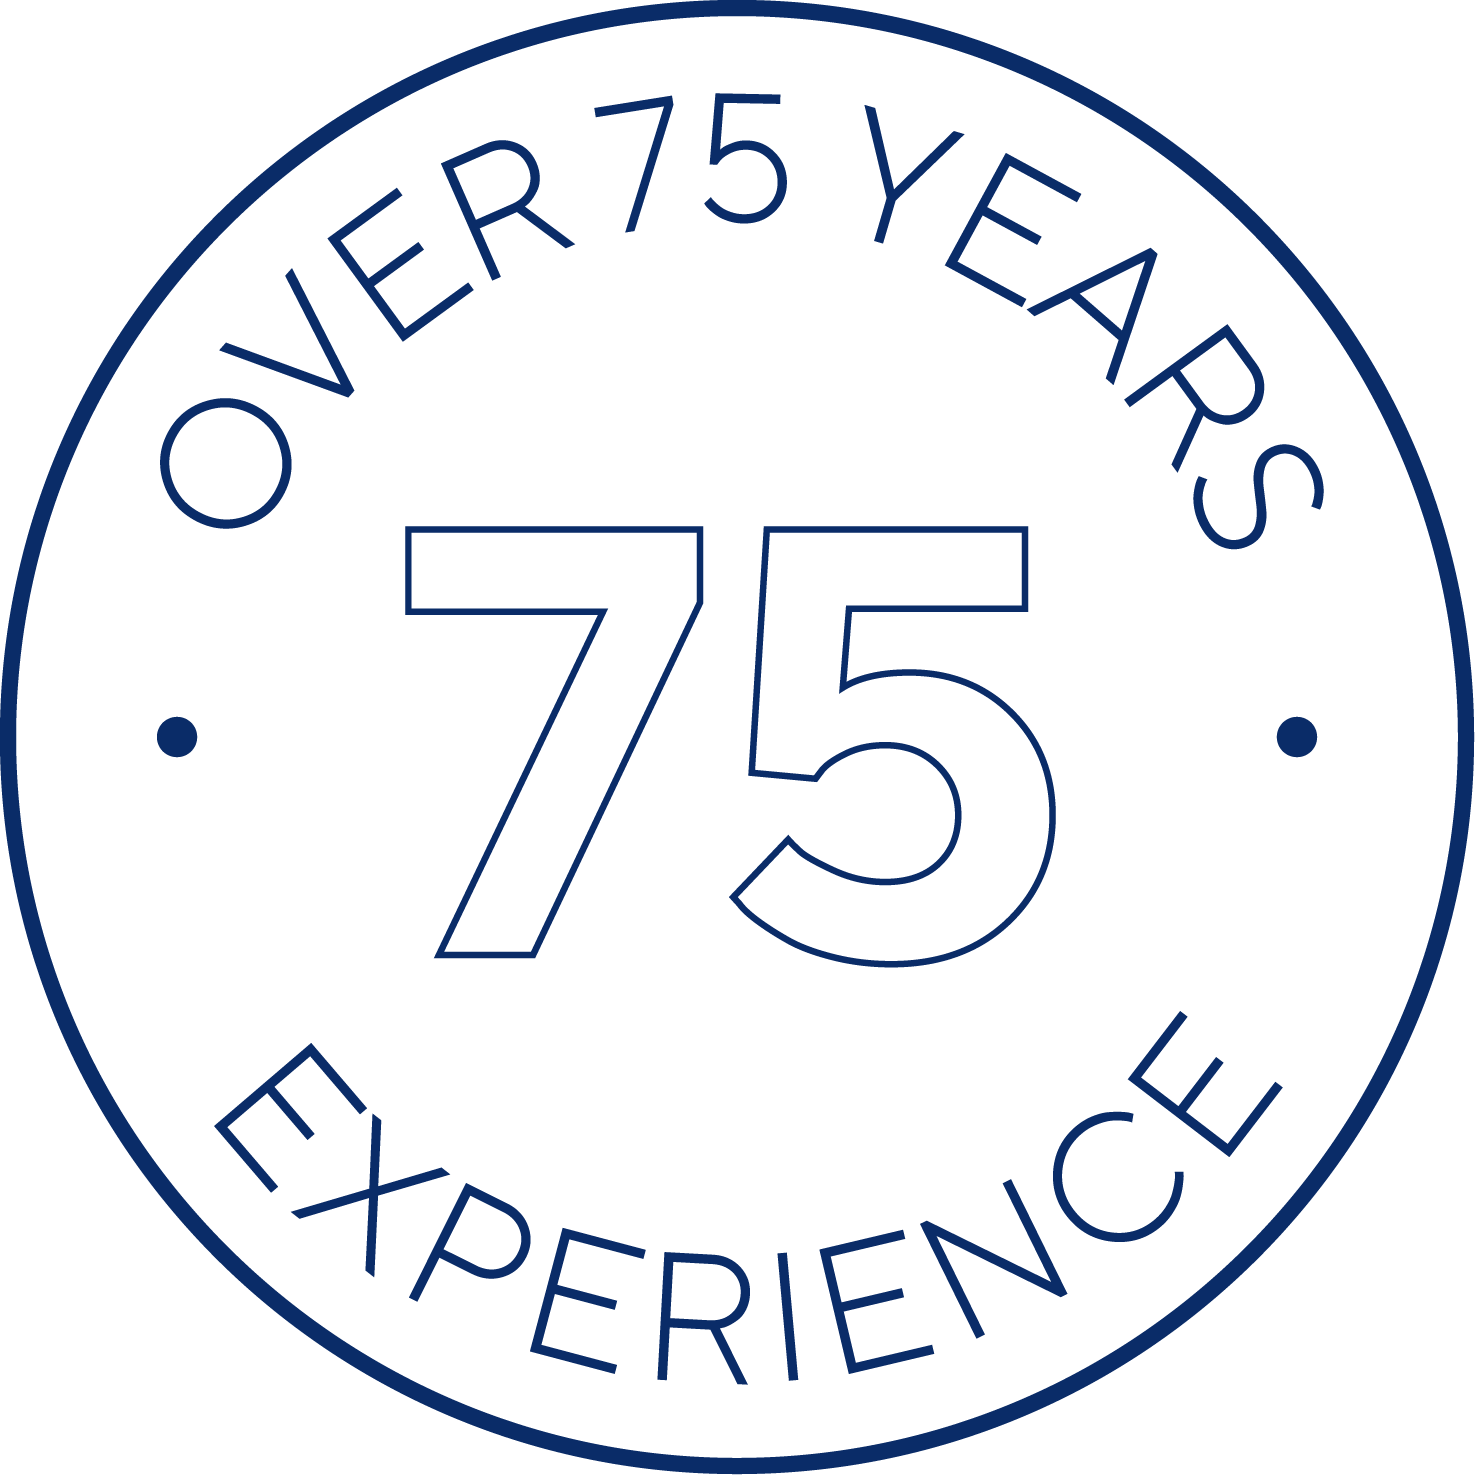 75 years experience